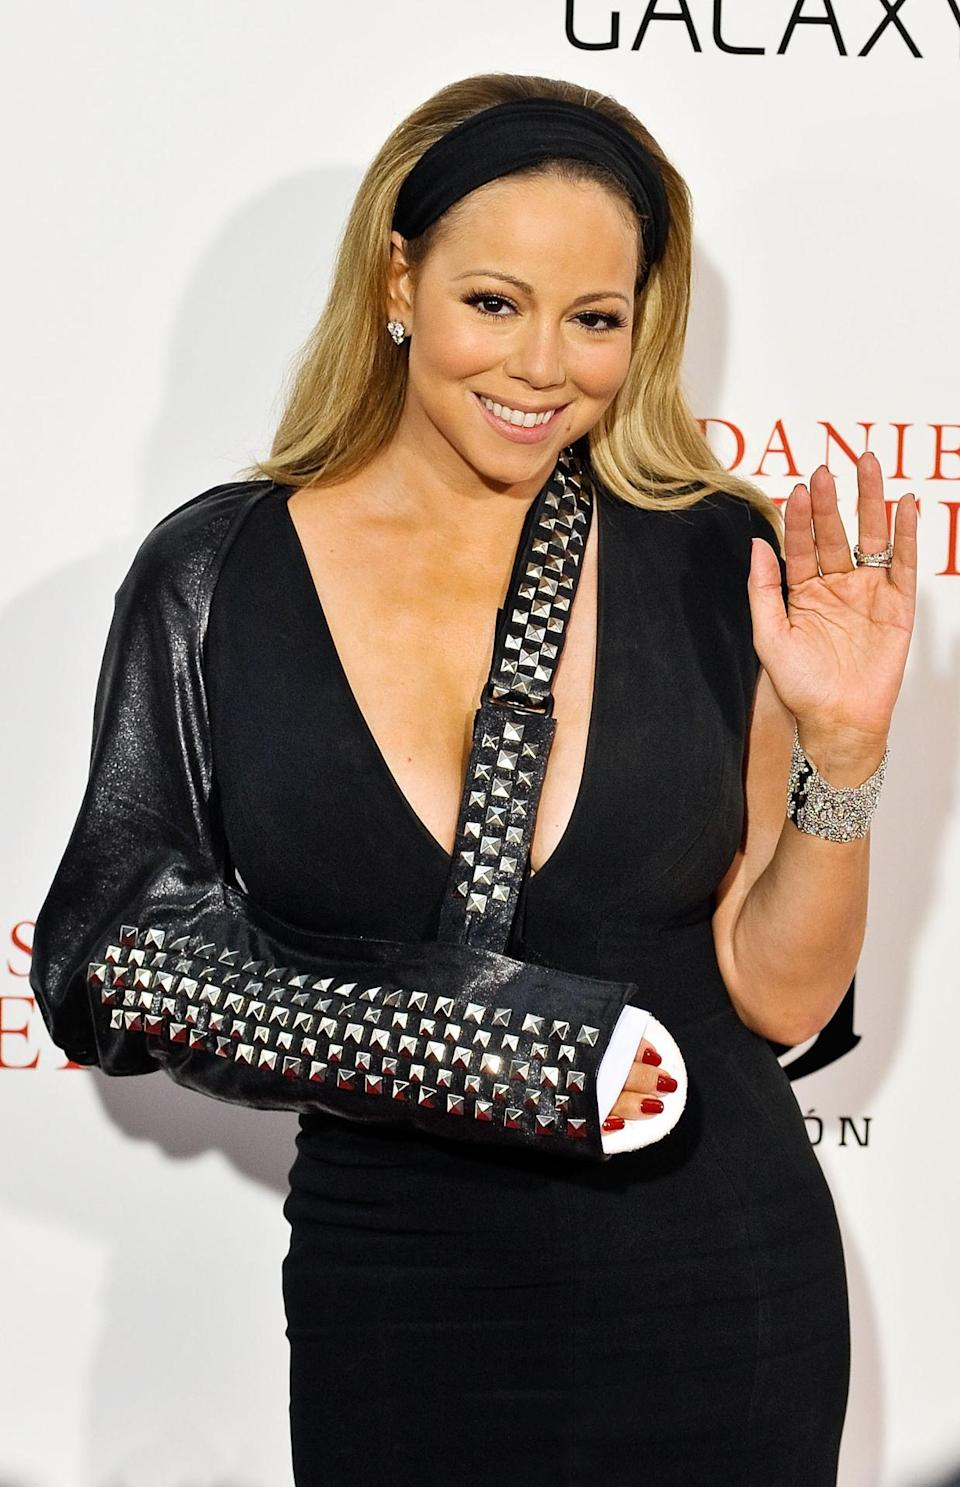 <p>Mariah Carey will go down in history as the celebrity with the most swagged-out broken arm. The butterfly queen went all punk rock on us when she tricked out her leathery arm sling. <i>(Photo: Getty)</i></p>